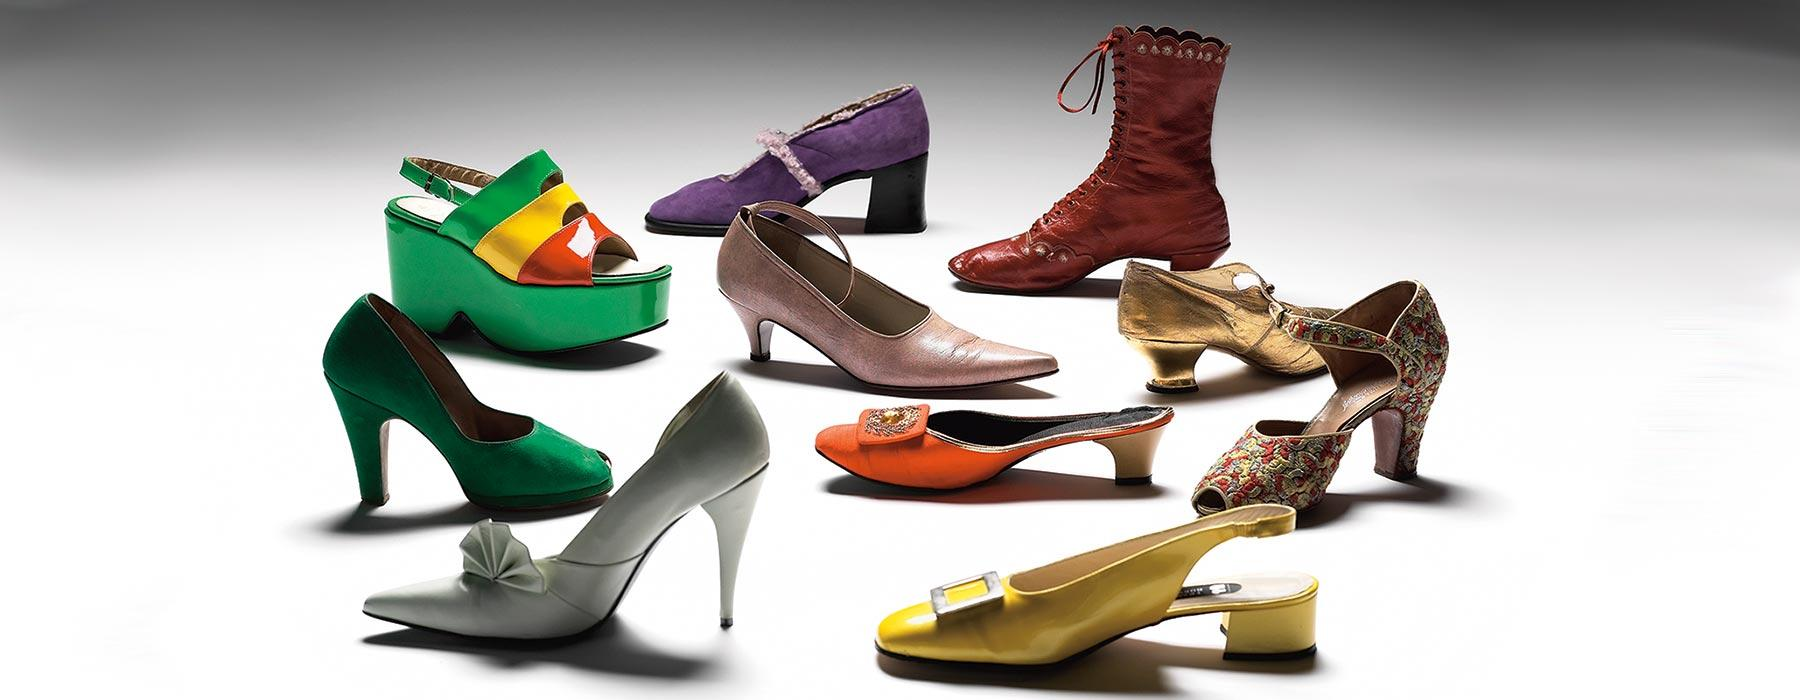 A selection of shoes